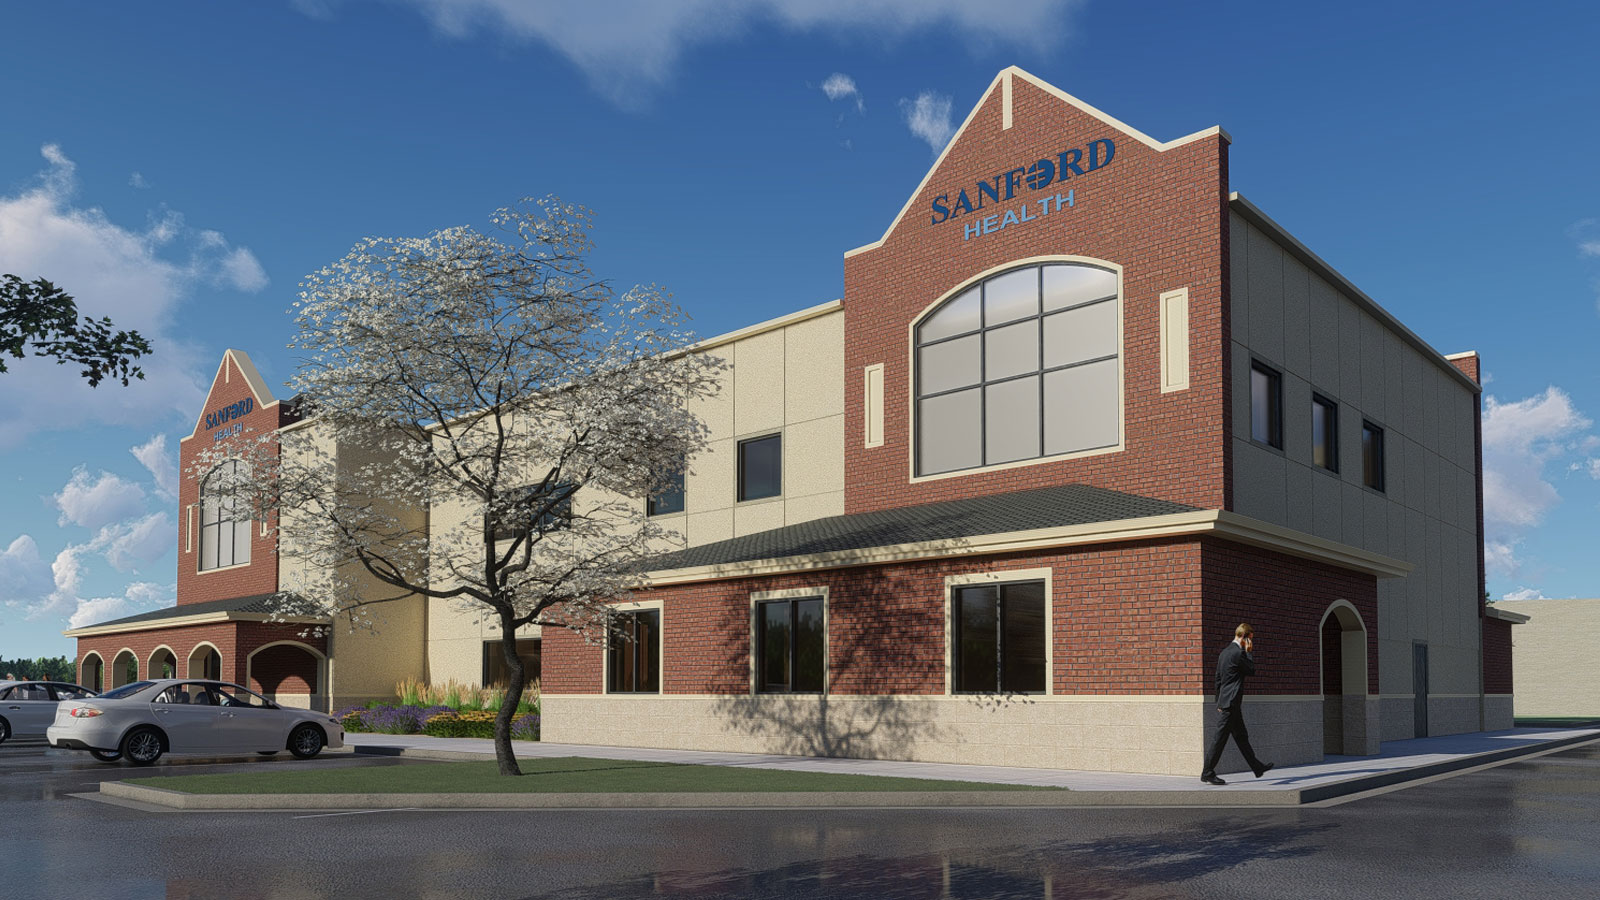 Summit League Office and Sanford Clinic Acute Care/Orthopedic Fast Track Clinic